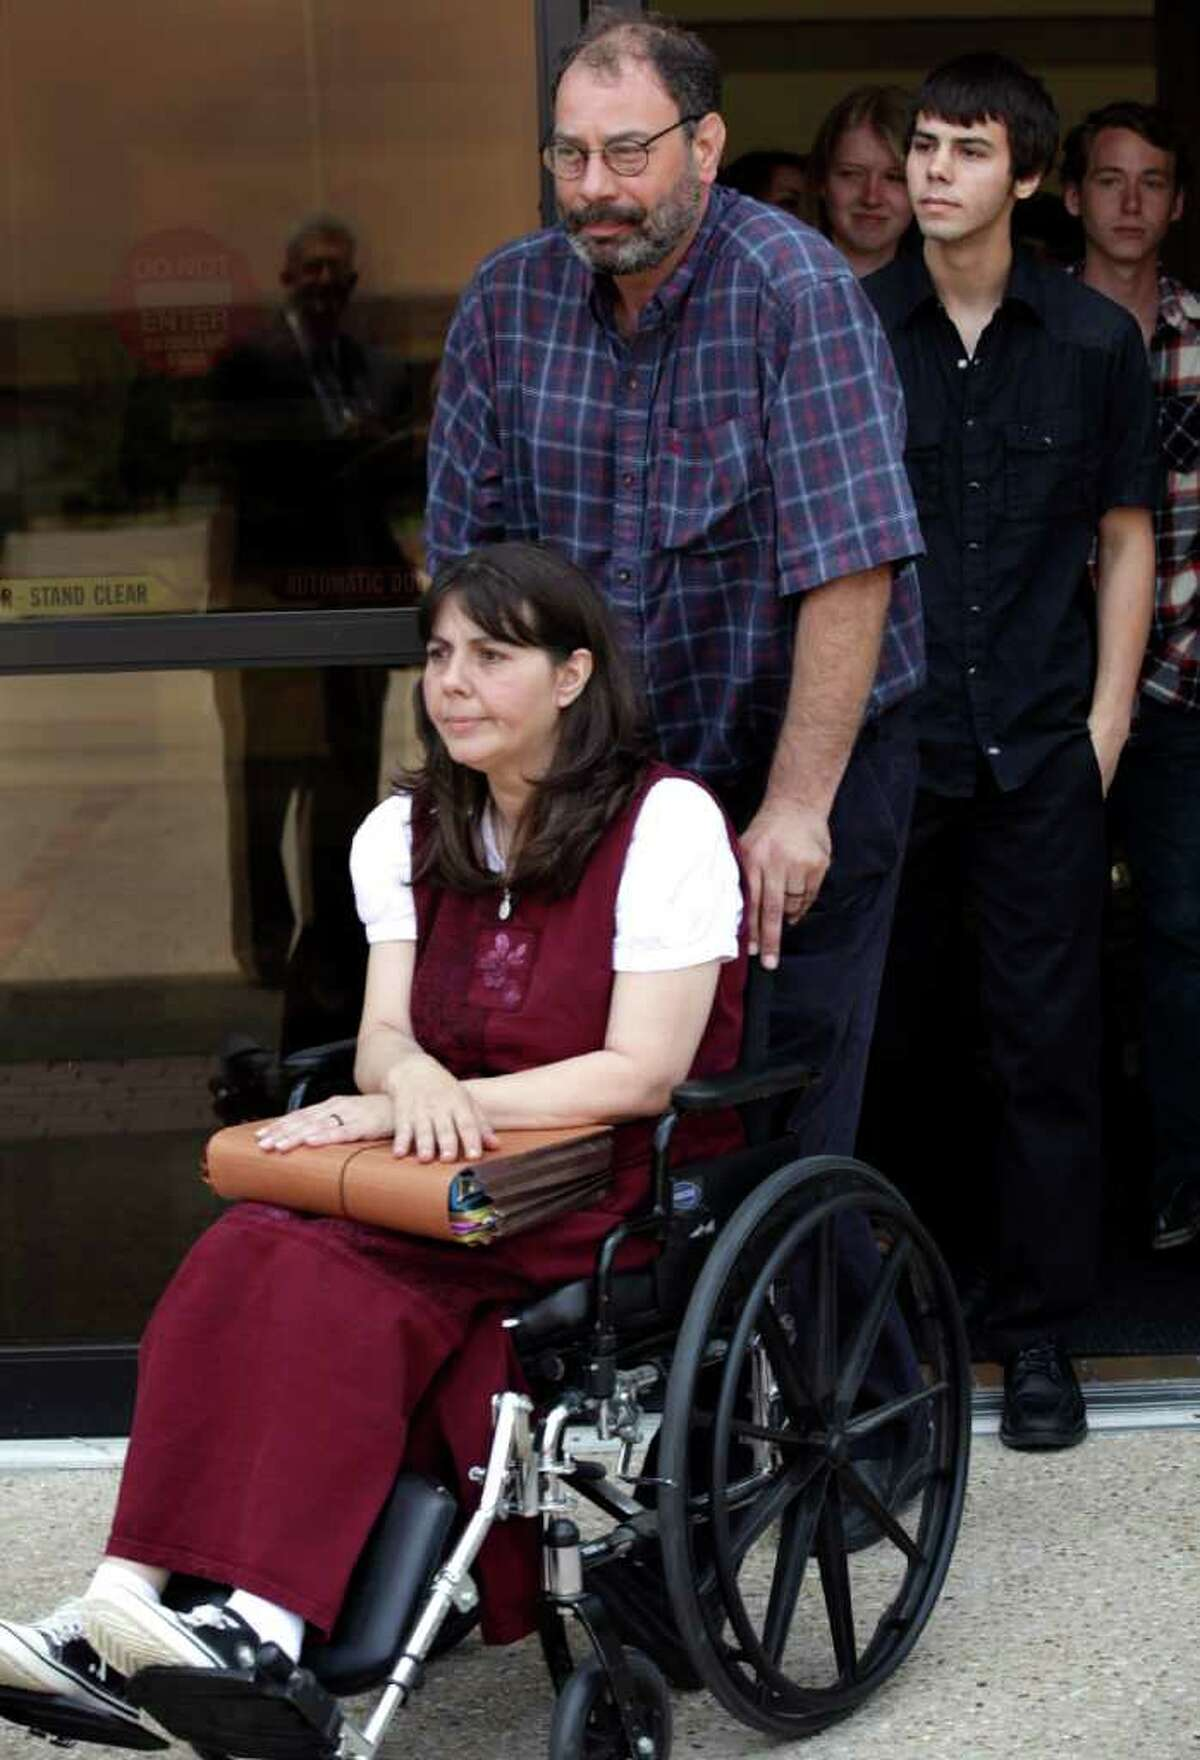 Danny Schultz escorts his wife Christa Schultz followed by their son Corwyn Schultz leave the U.S. Courthouse in San Antonio, May 31, after a hearing in which they are trying to ban the use of prayer during Medina Valley High School's graduation ceremonies this Saturday. Corwyn is in the graduating class.